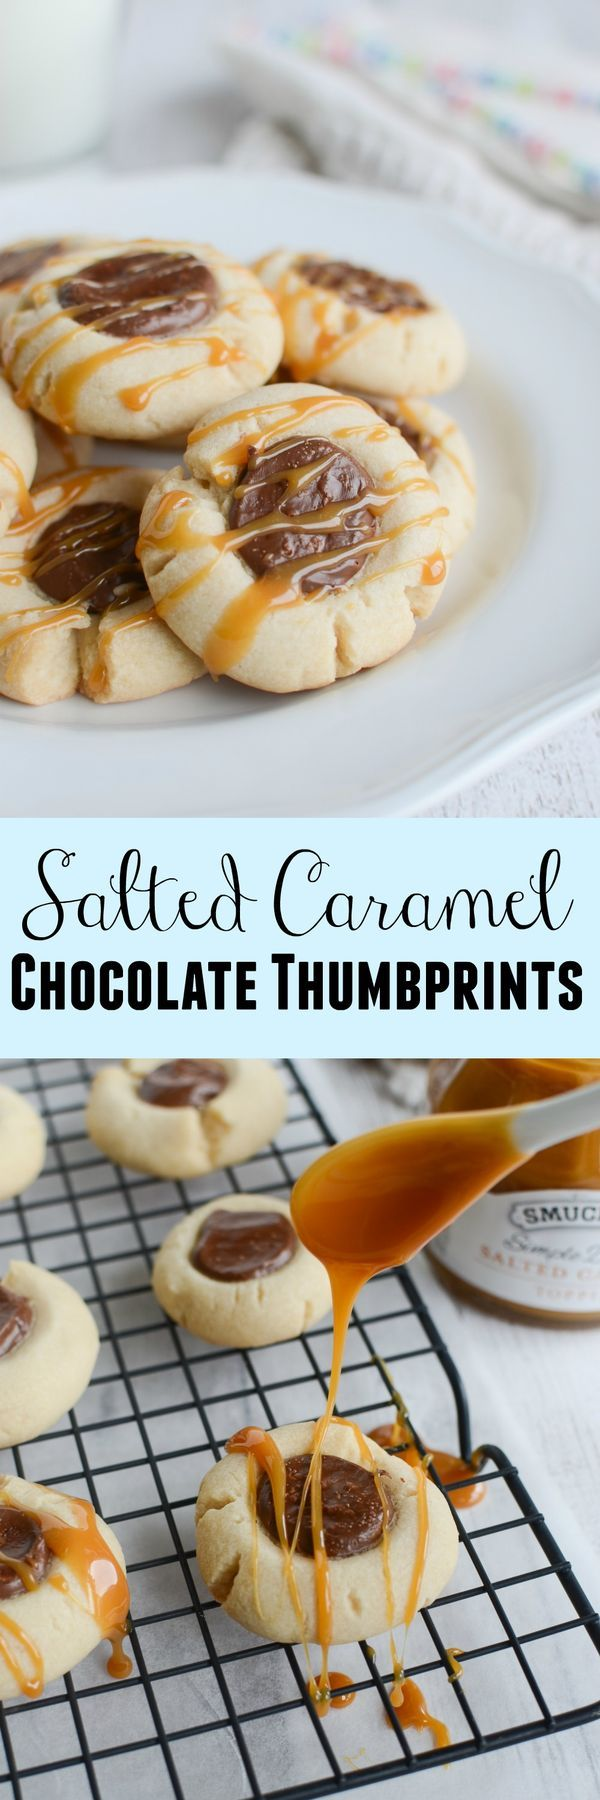 The best images about kids in the kitchen on pinterest easy